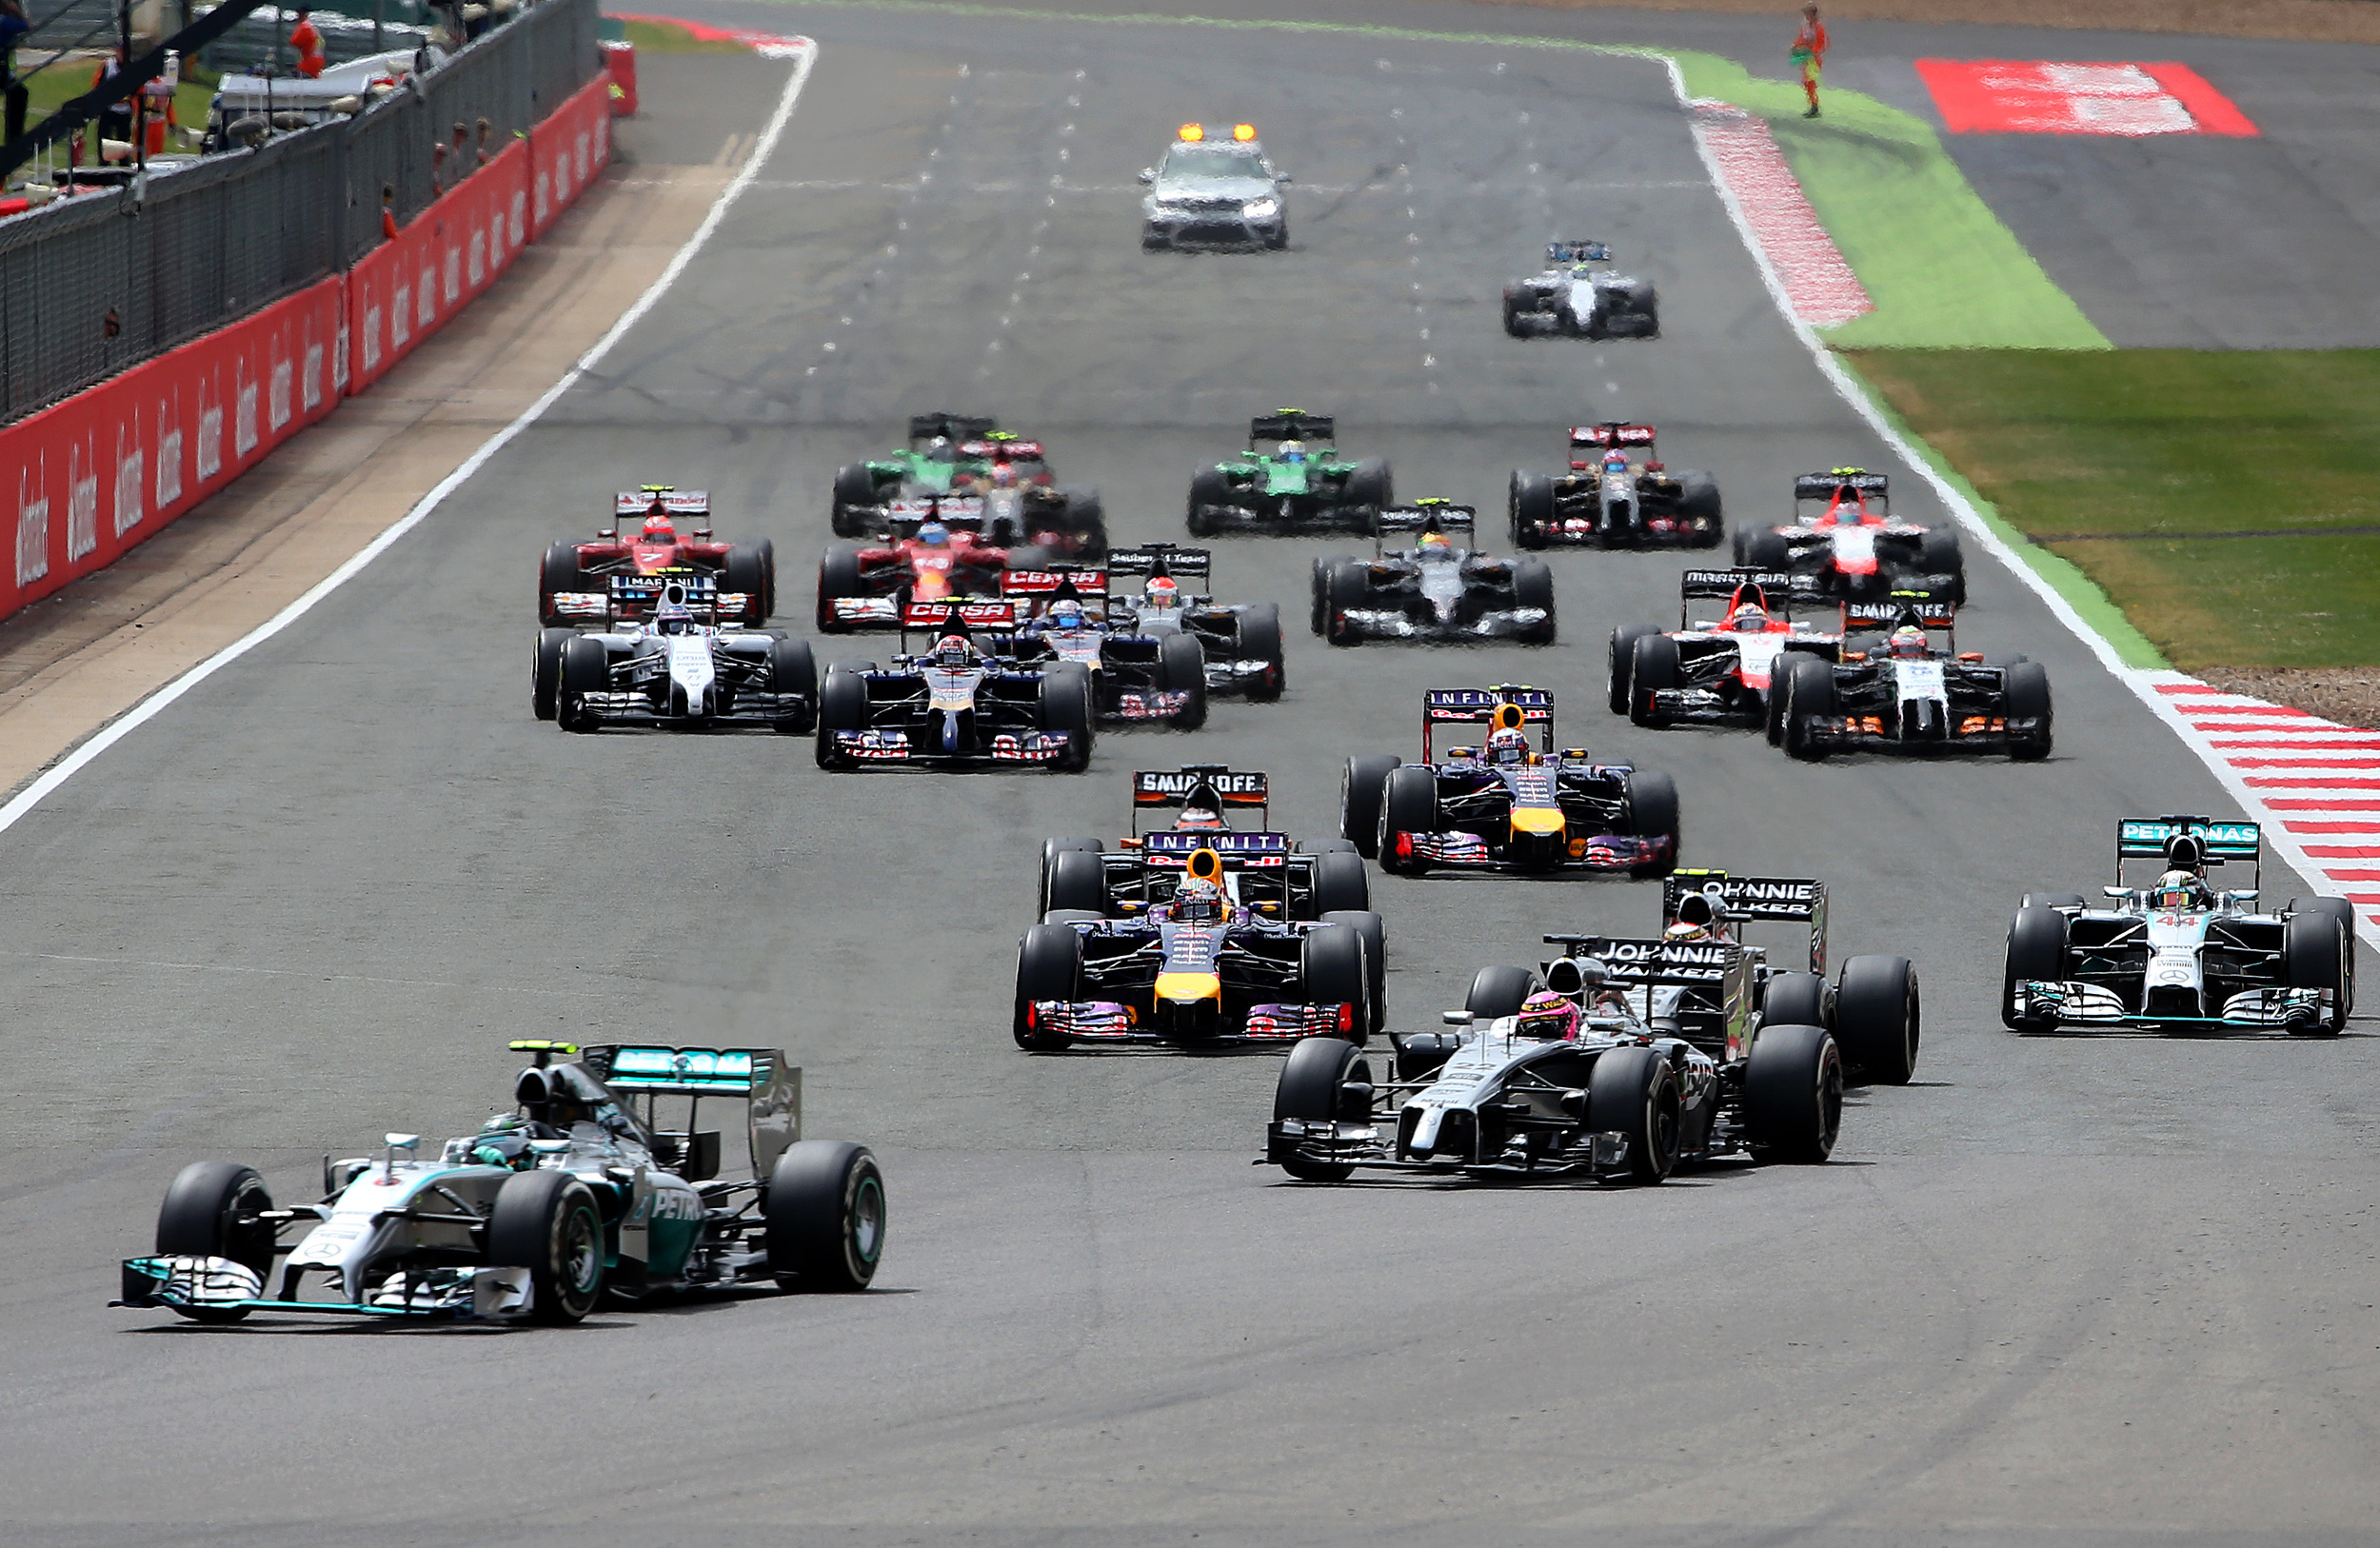 Grand Prix F1 du Japon 2014 en direct live streaming